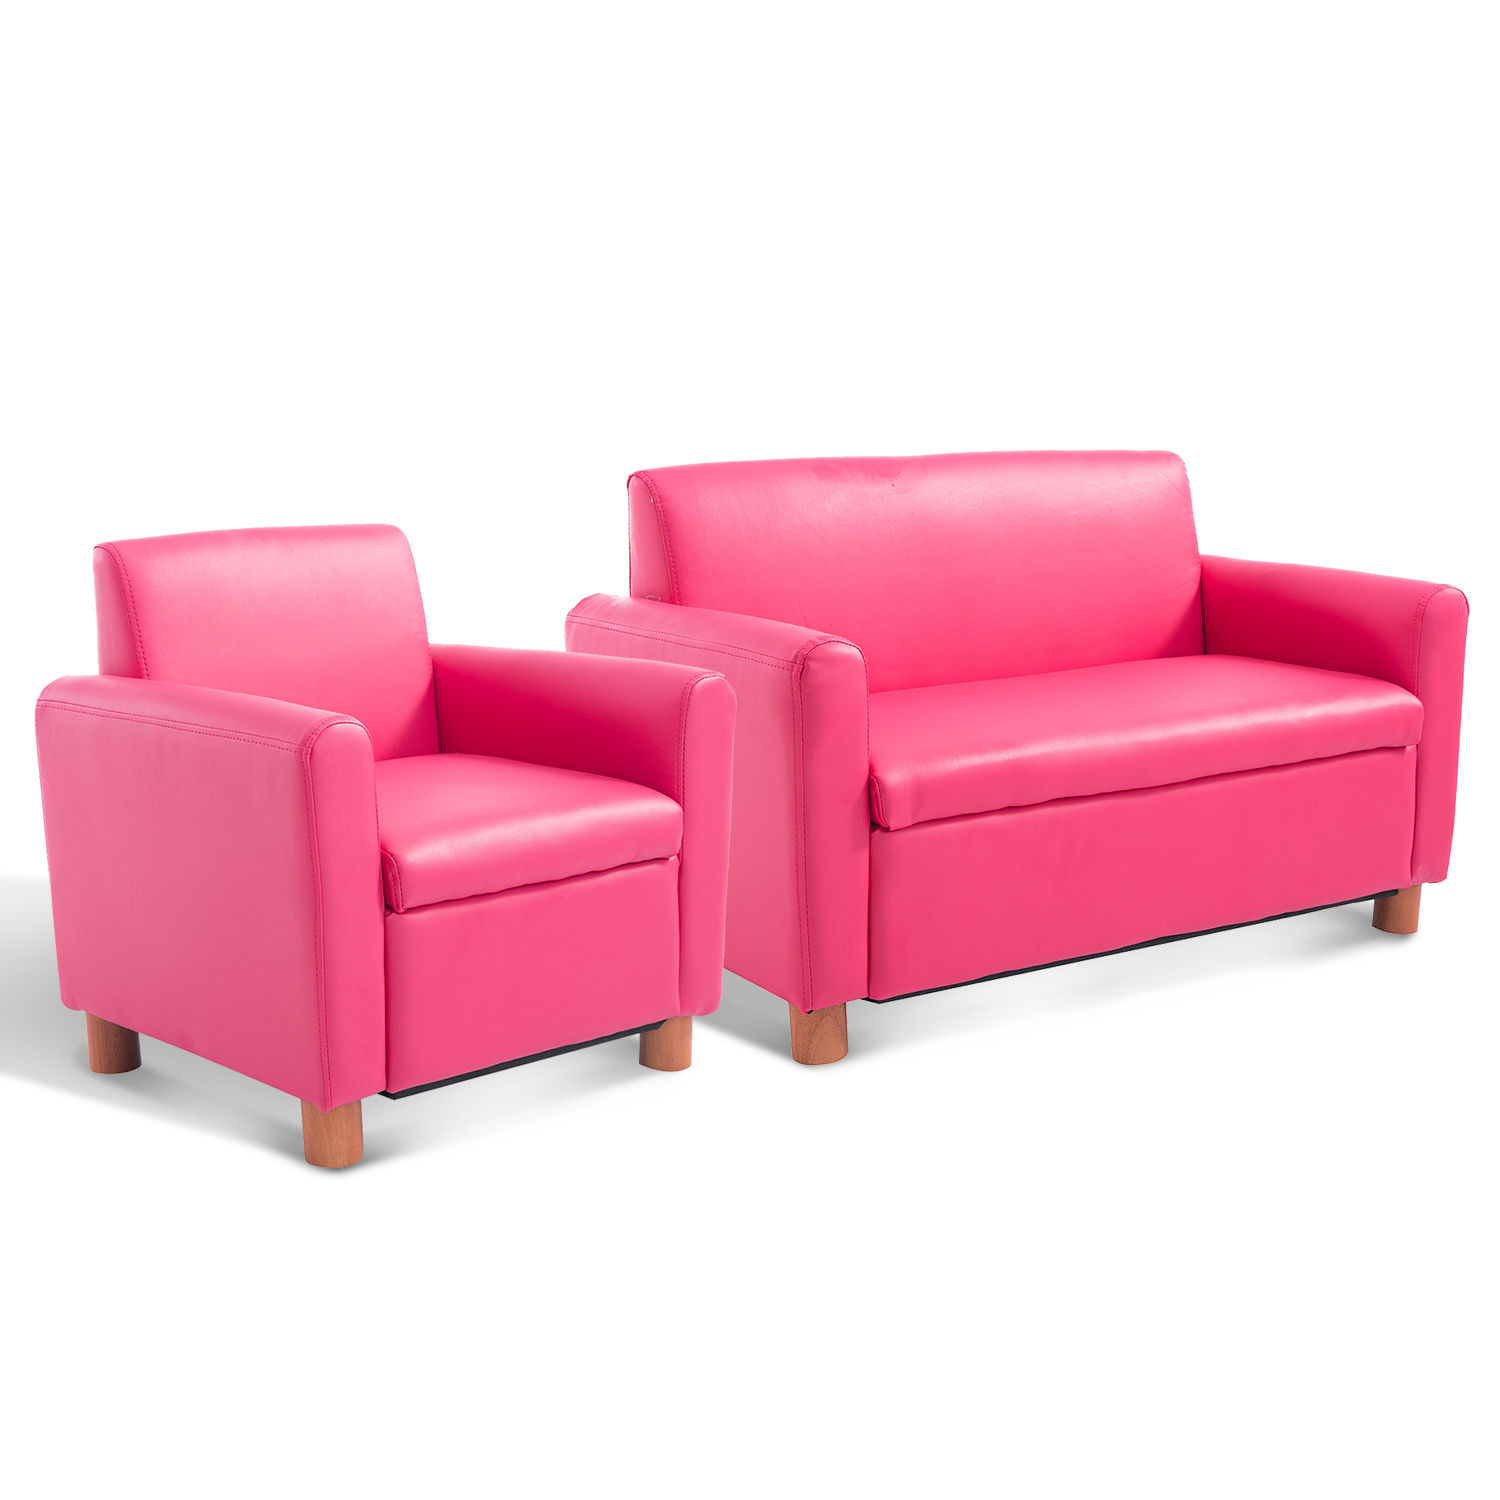 Toddler Couch Chair Details About Kids Sofa Single Pu Leather Armchair Pink Toddler Couch Lazybones Relax Quality